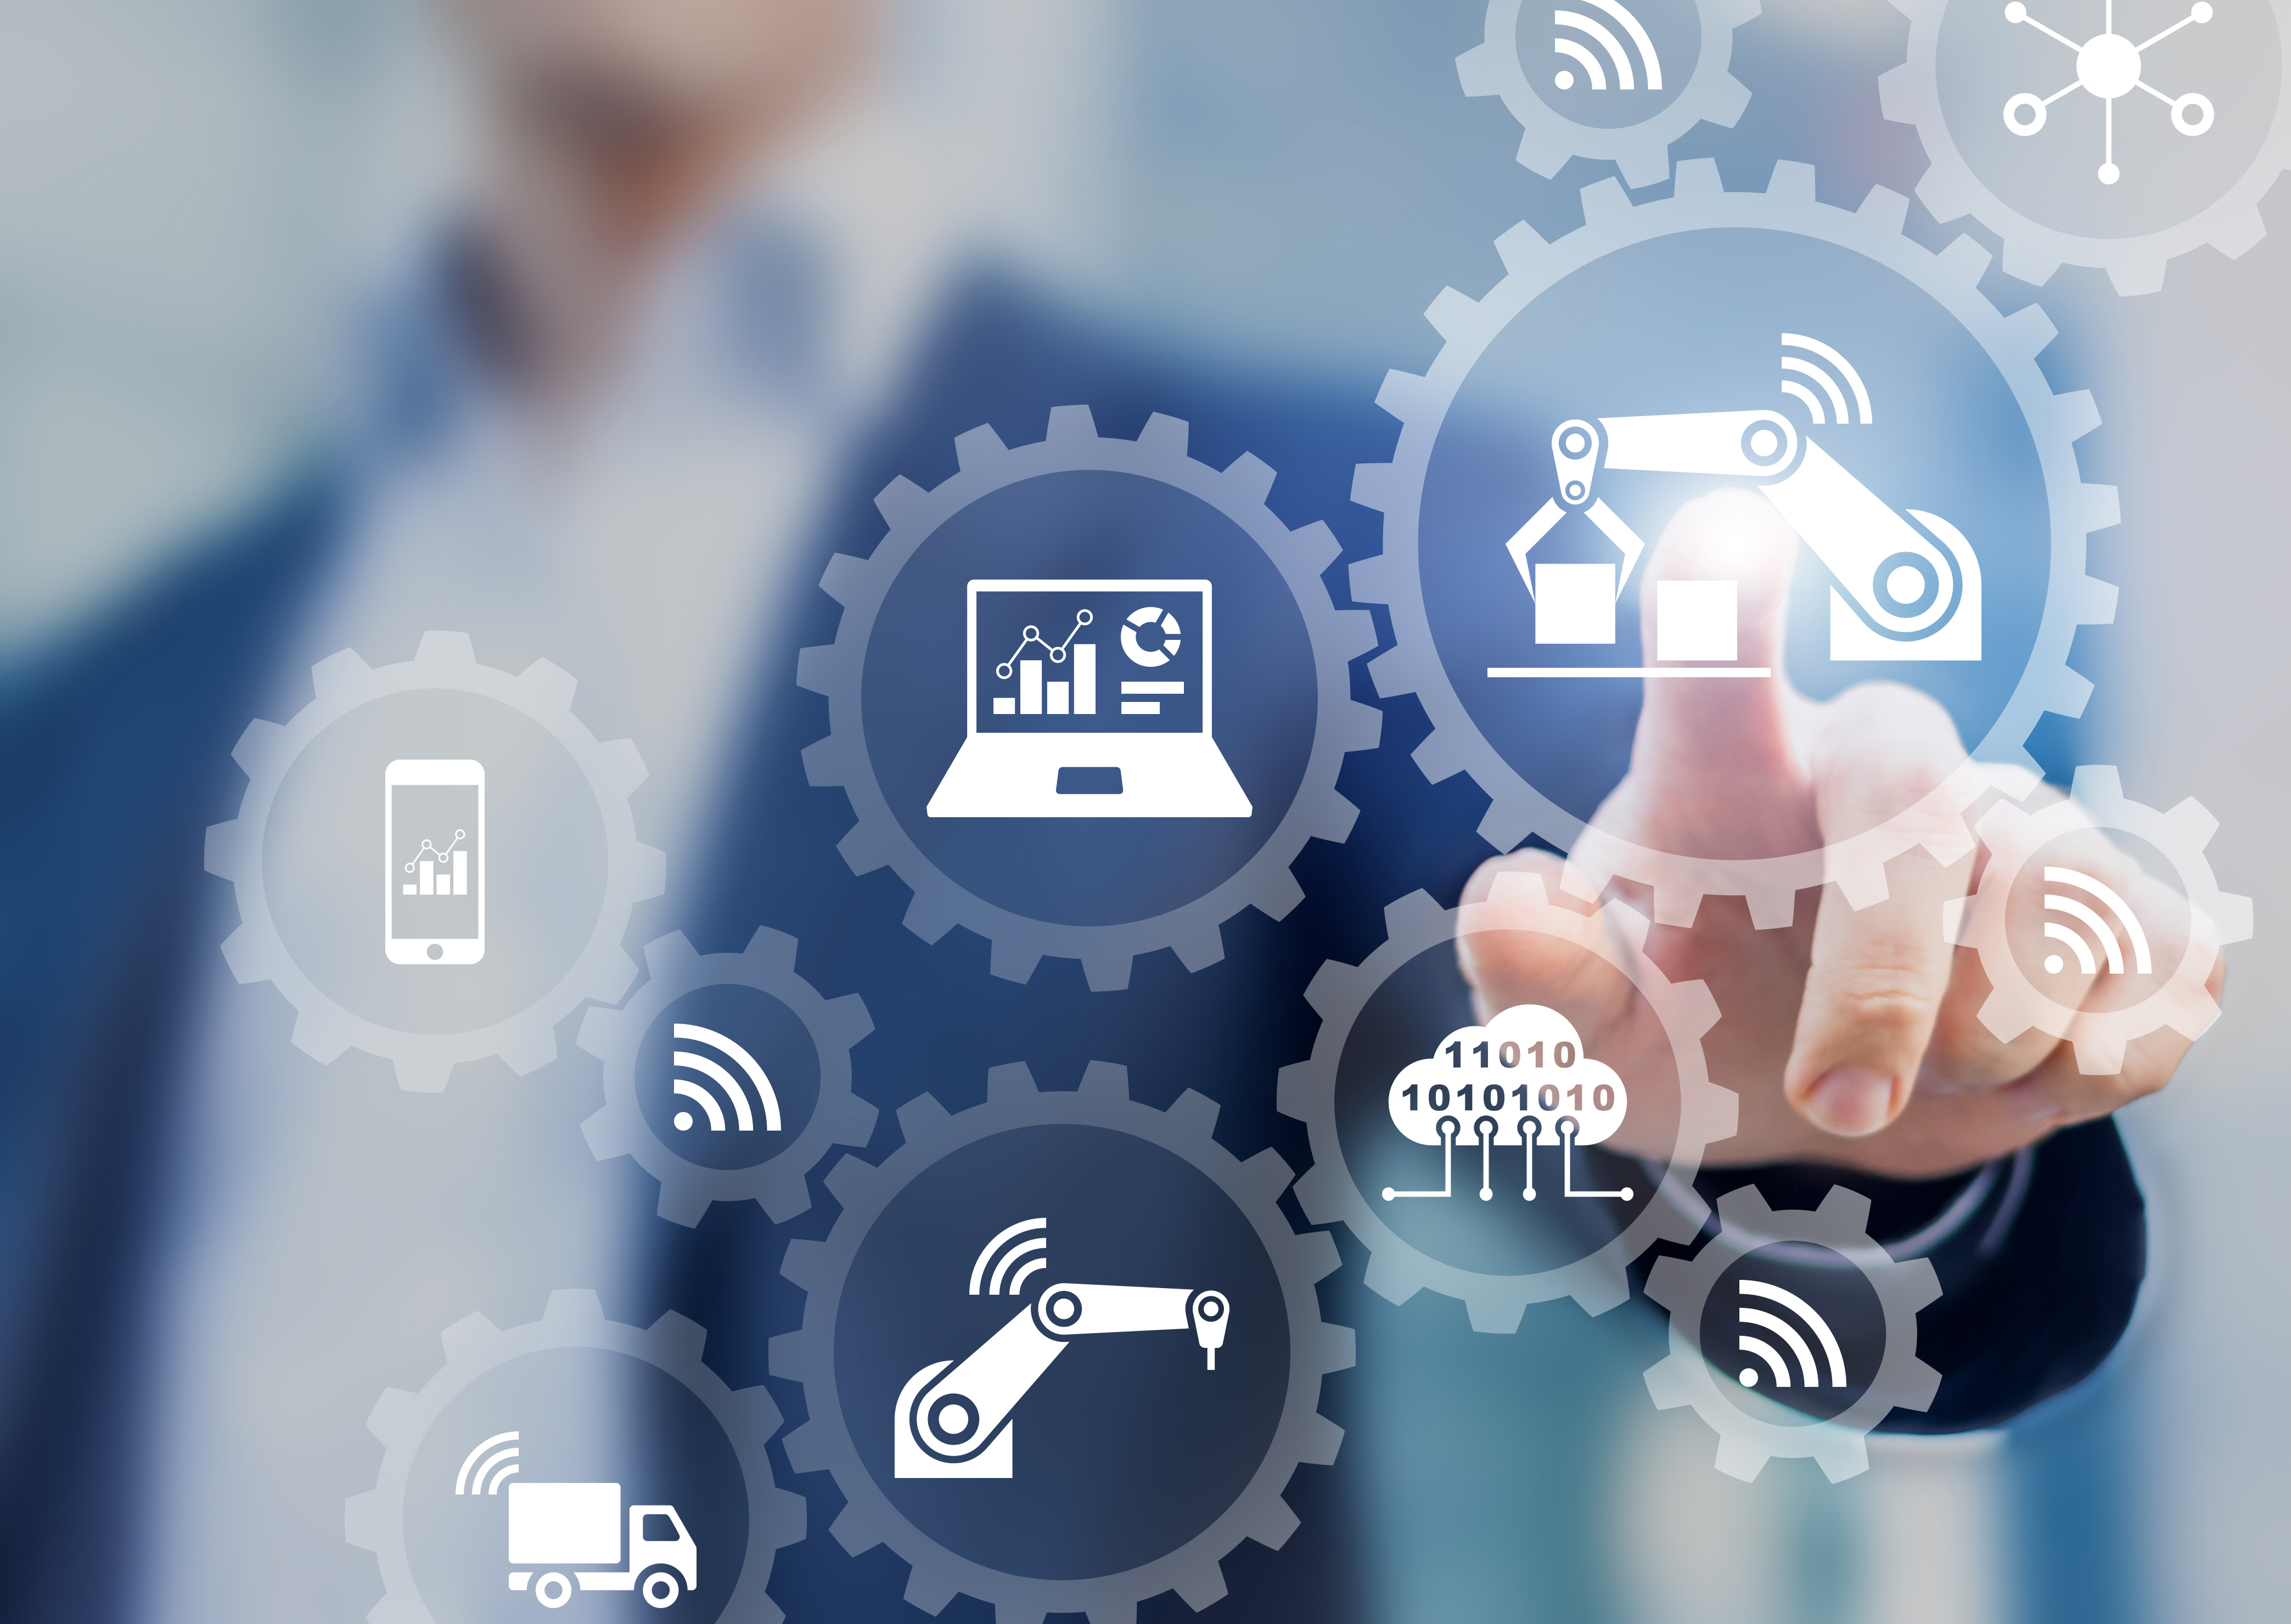 Smart factory and industry 4.0 concept with connected production robots exchanging data with internet of things (IoT) and cloud computing technology, businessman touching interface with icons in gears